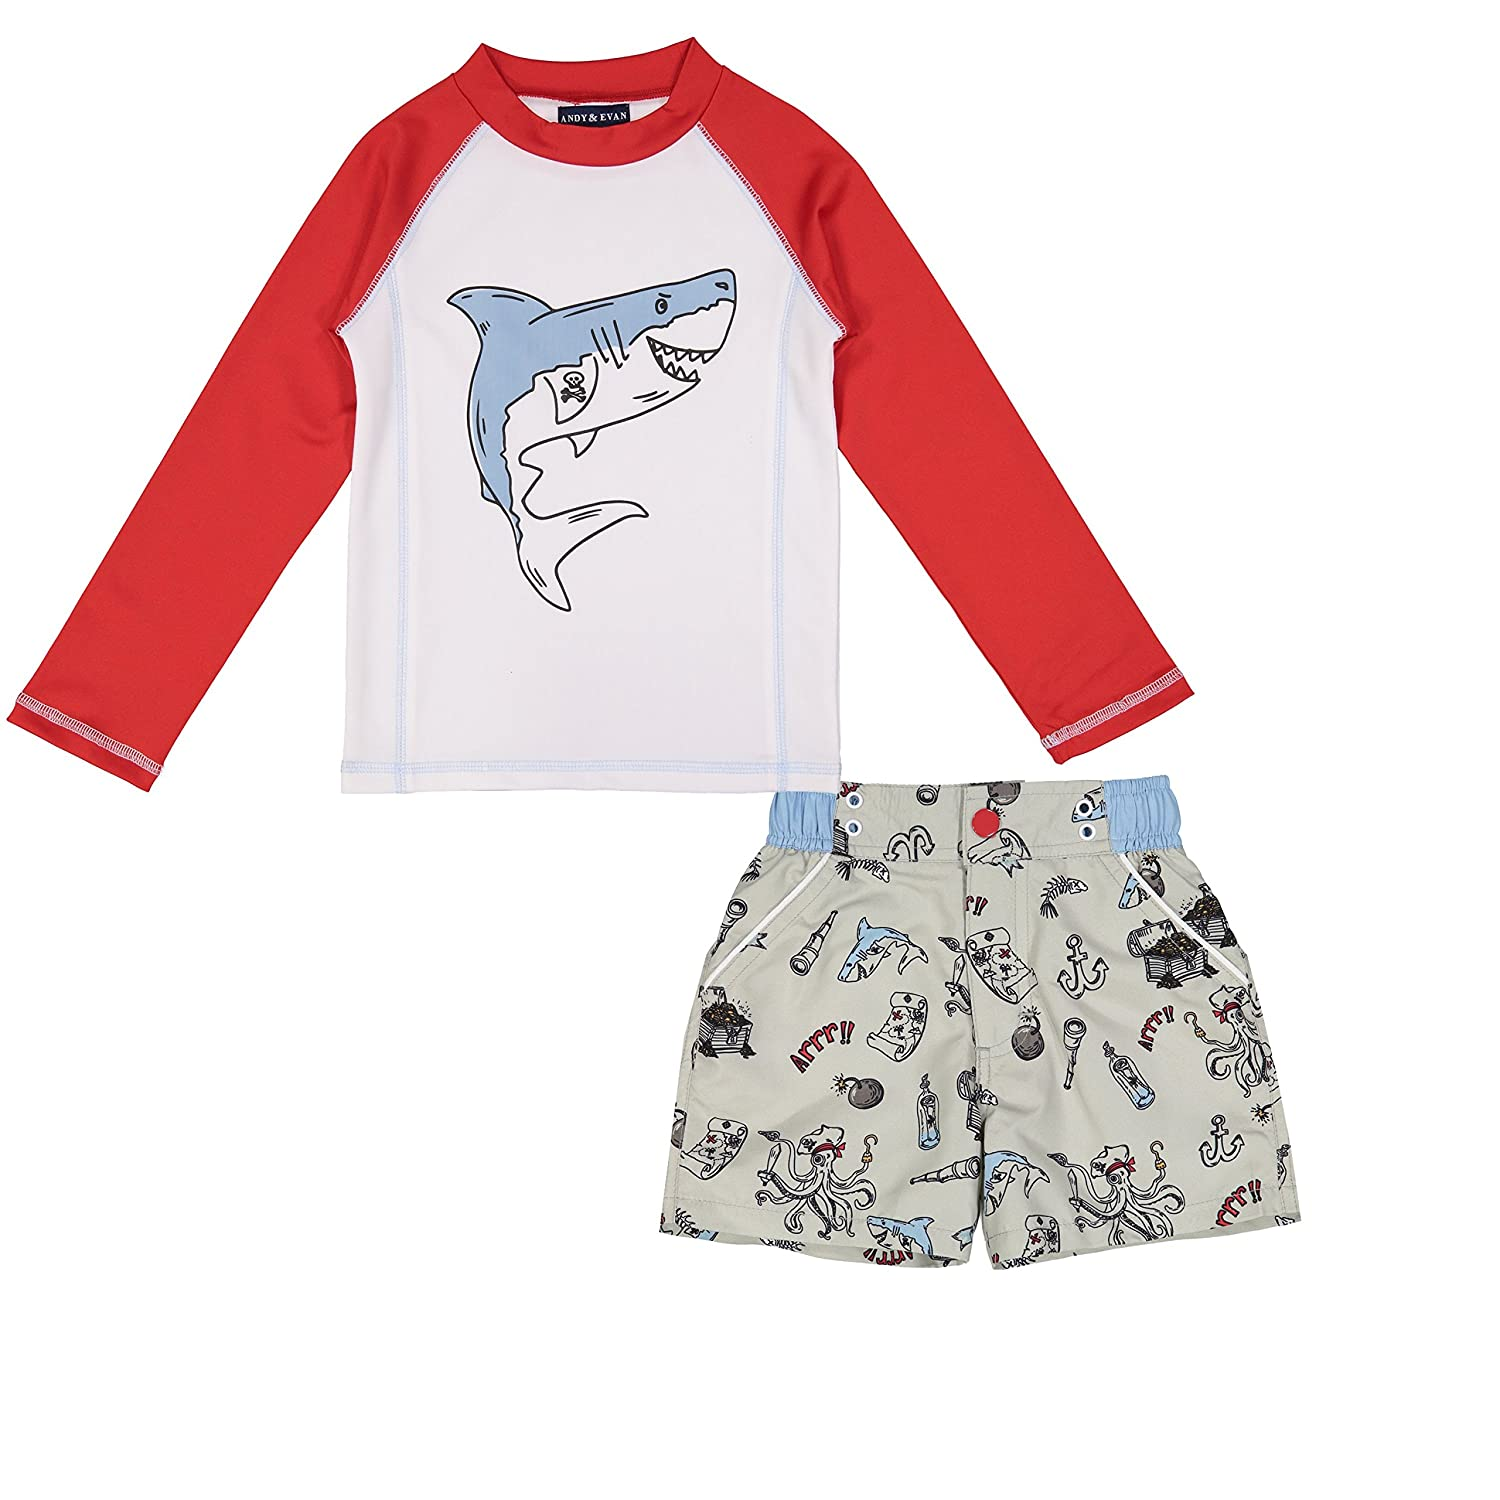 d66ca8ccfd Amazon.com: Andy & Evan Infant, Toddler & Boys 50 UPF Protection Rashguard  Top or Set: Clothing